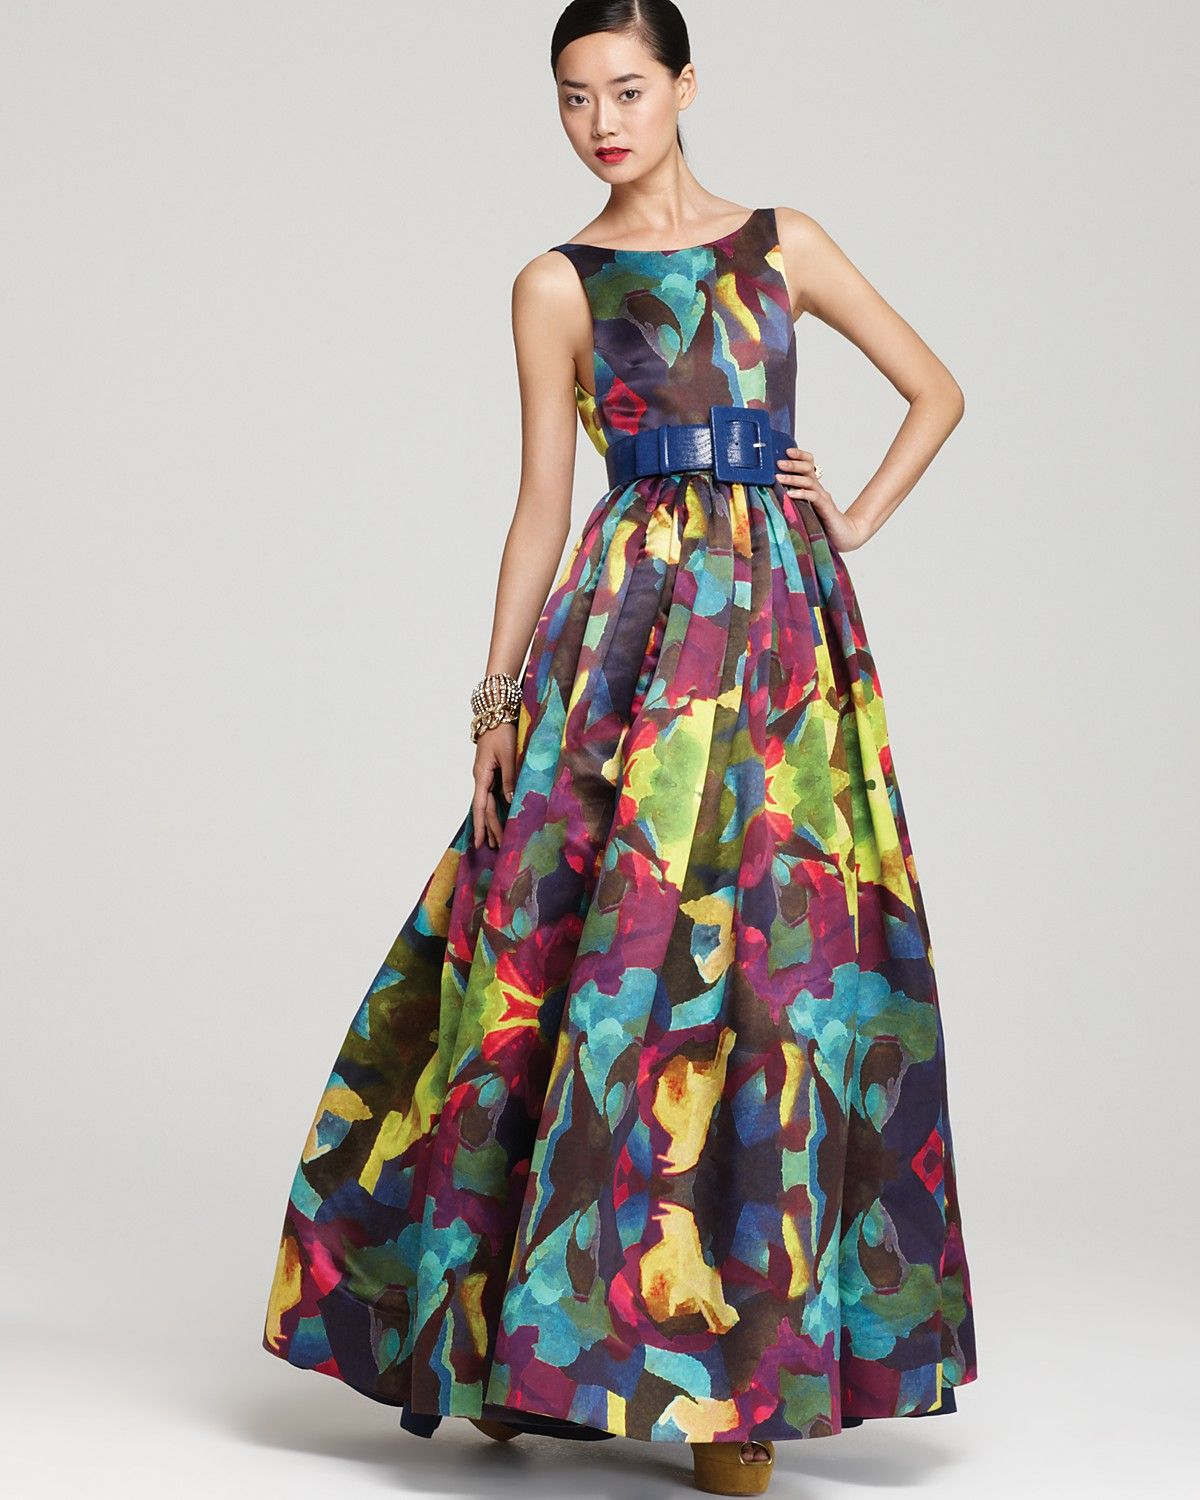 Fell in love with this dress alice olivia gown printed fell in love with this dress alice olivia gown printed bloomingdales junglespirit Images